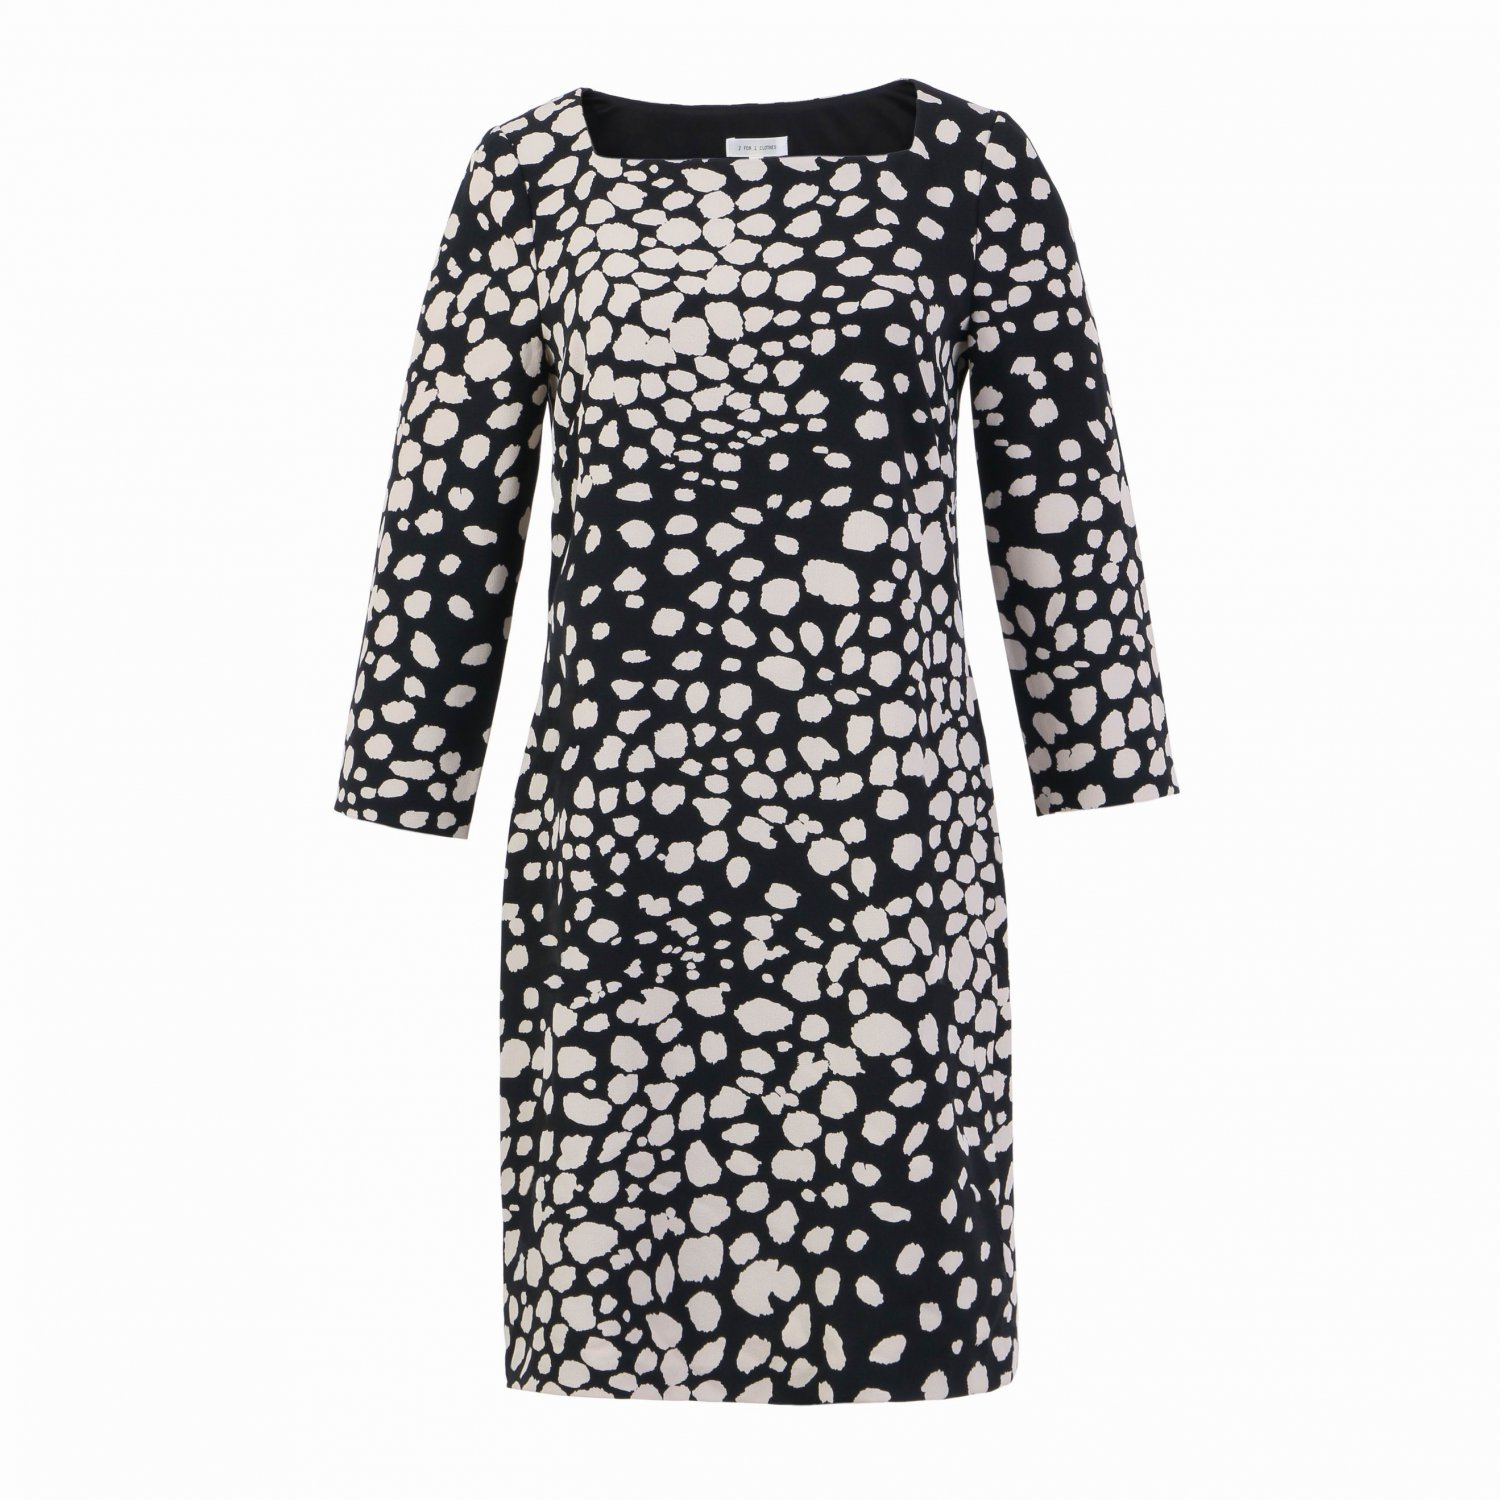 2 FOR 1 CLOTHES 3/4 Sleeve Dress